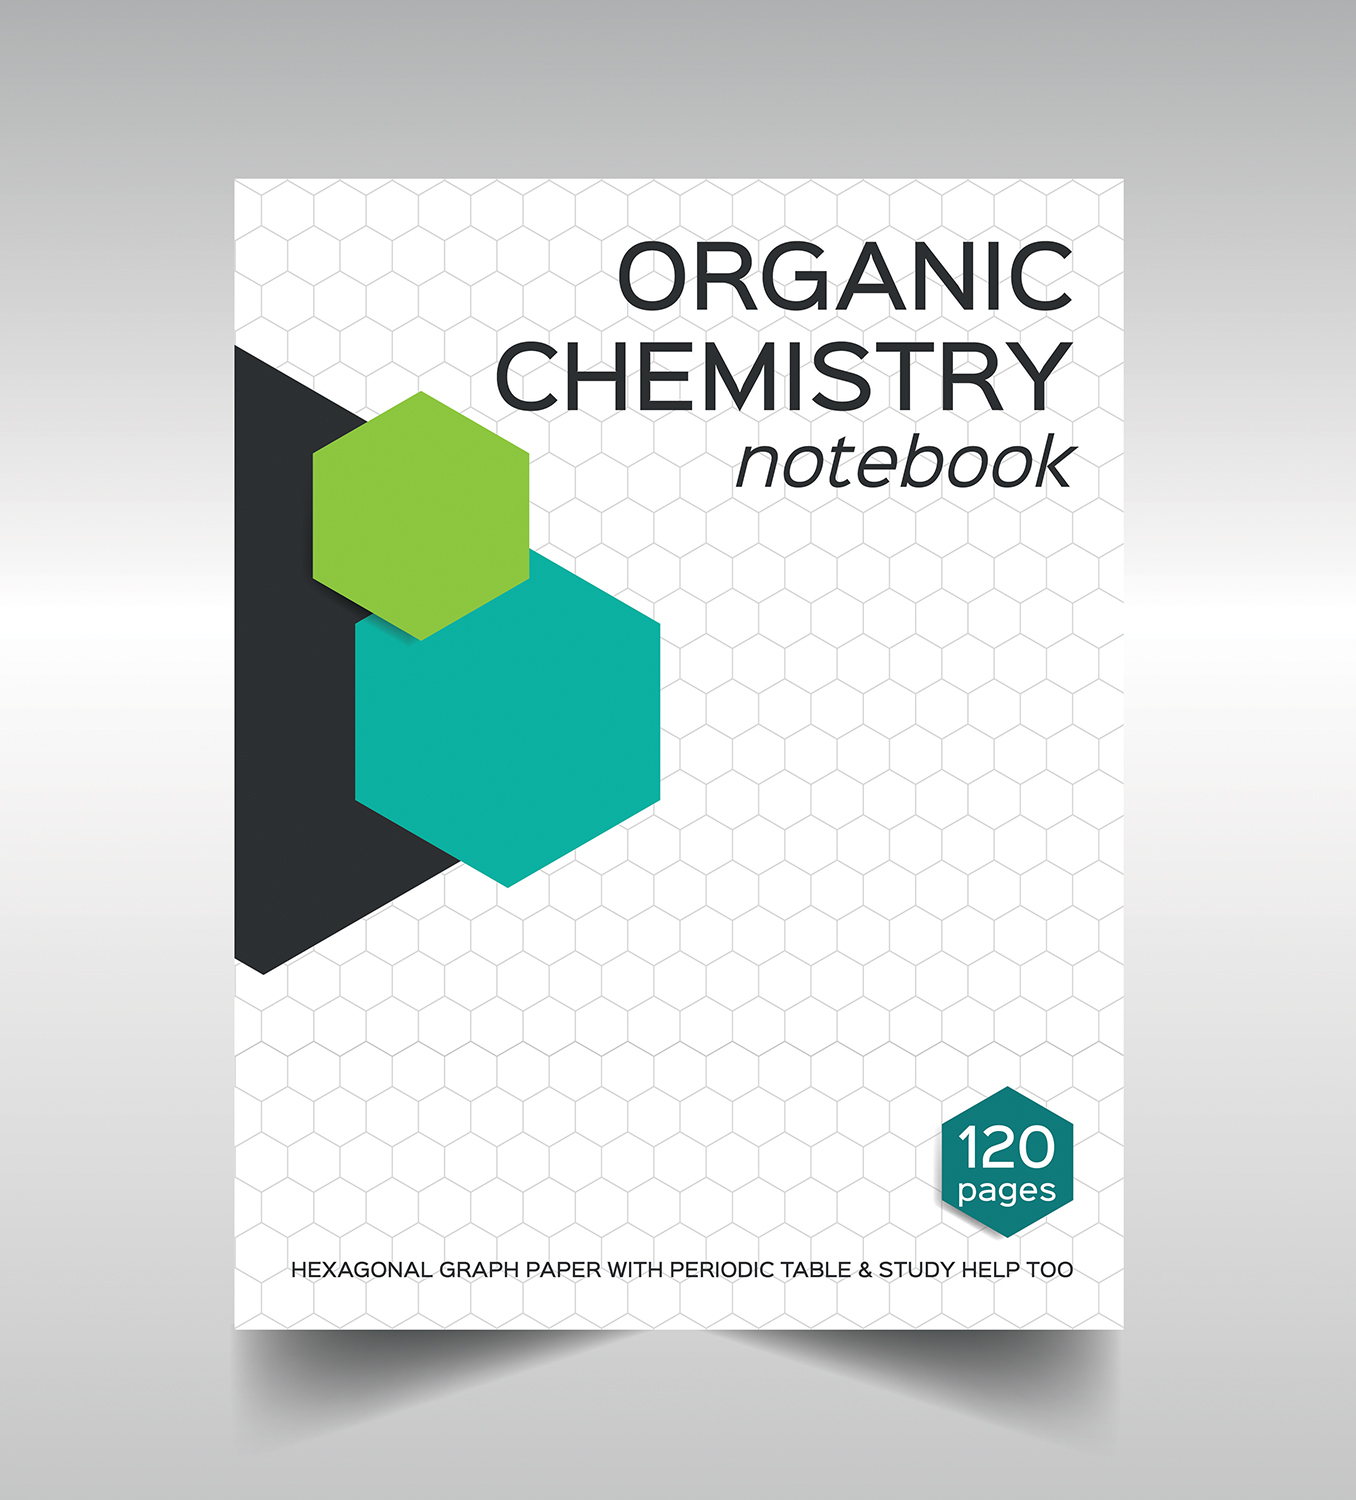 Book Cover Architecture Notes : Serious bold book cover design for aceorganicchem by